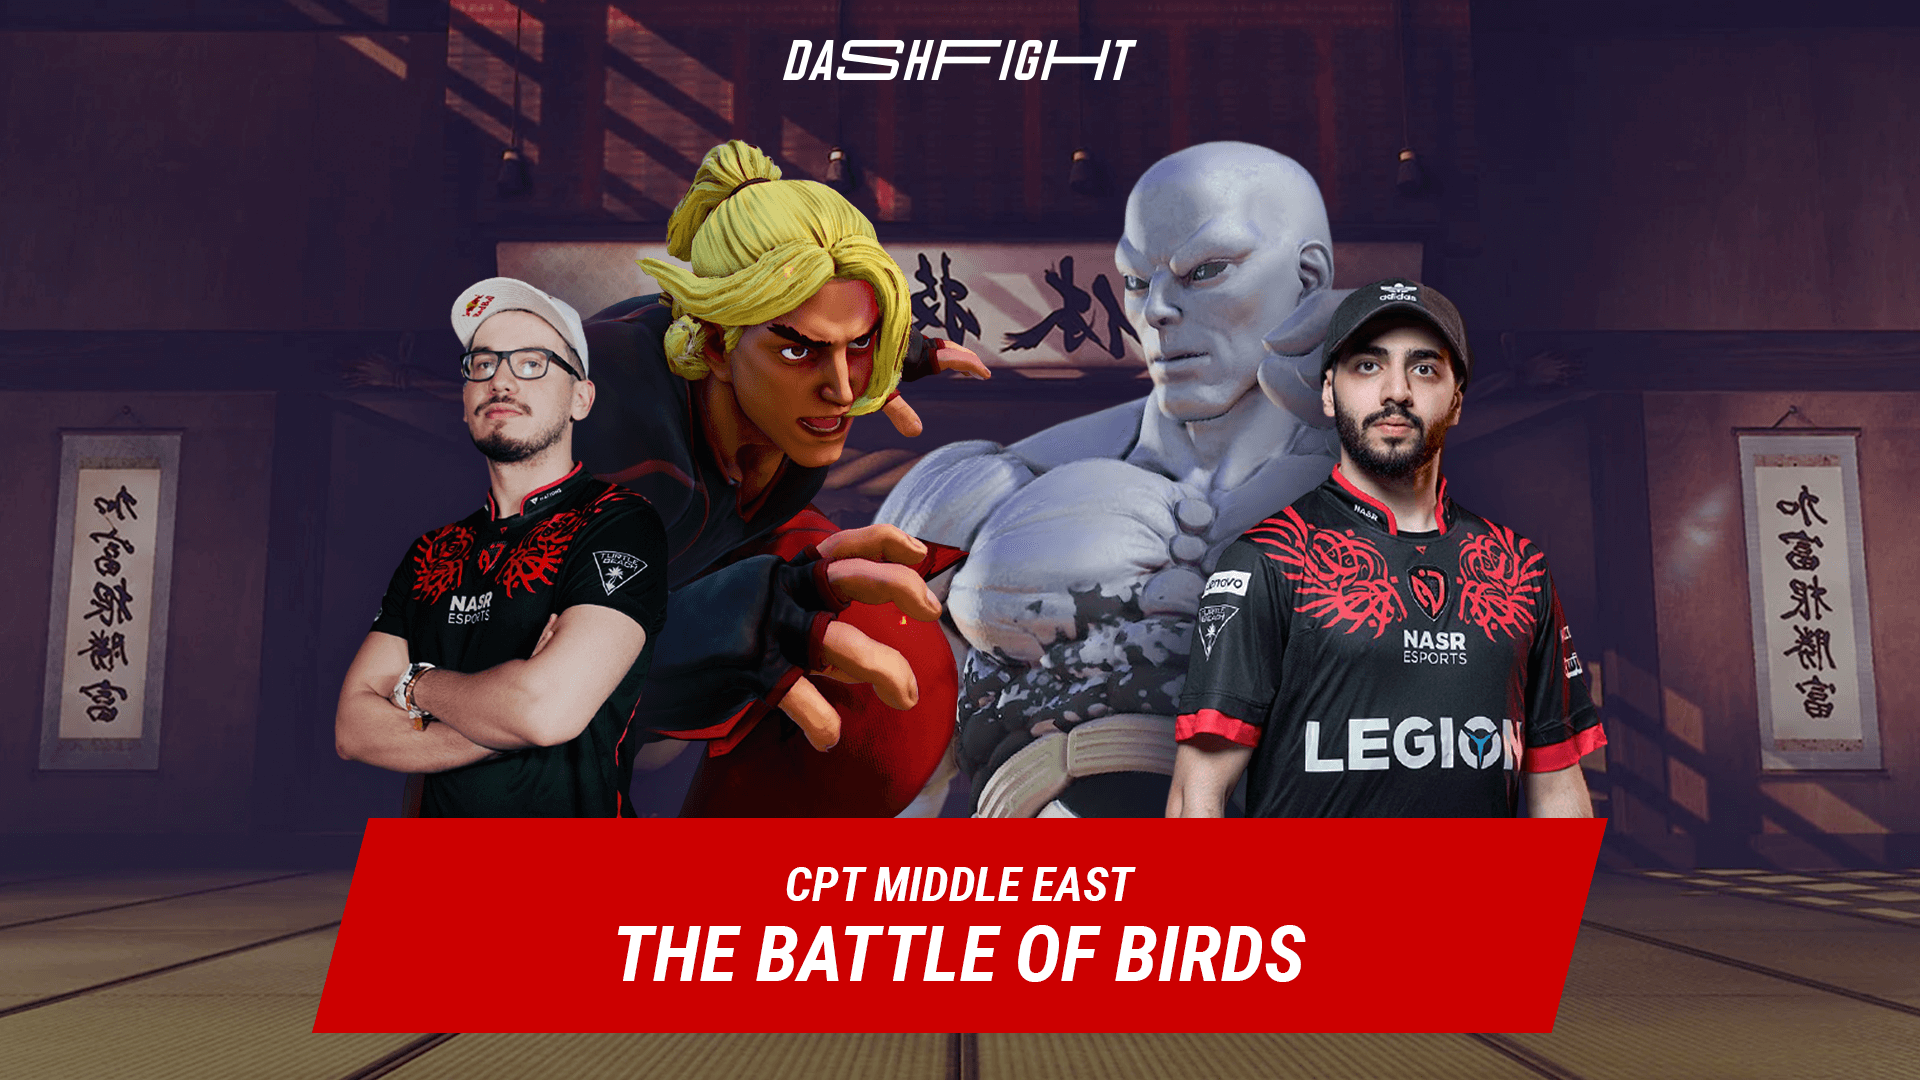 CPT Middle East 1: the Battle of Birds